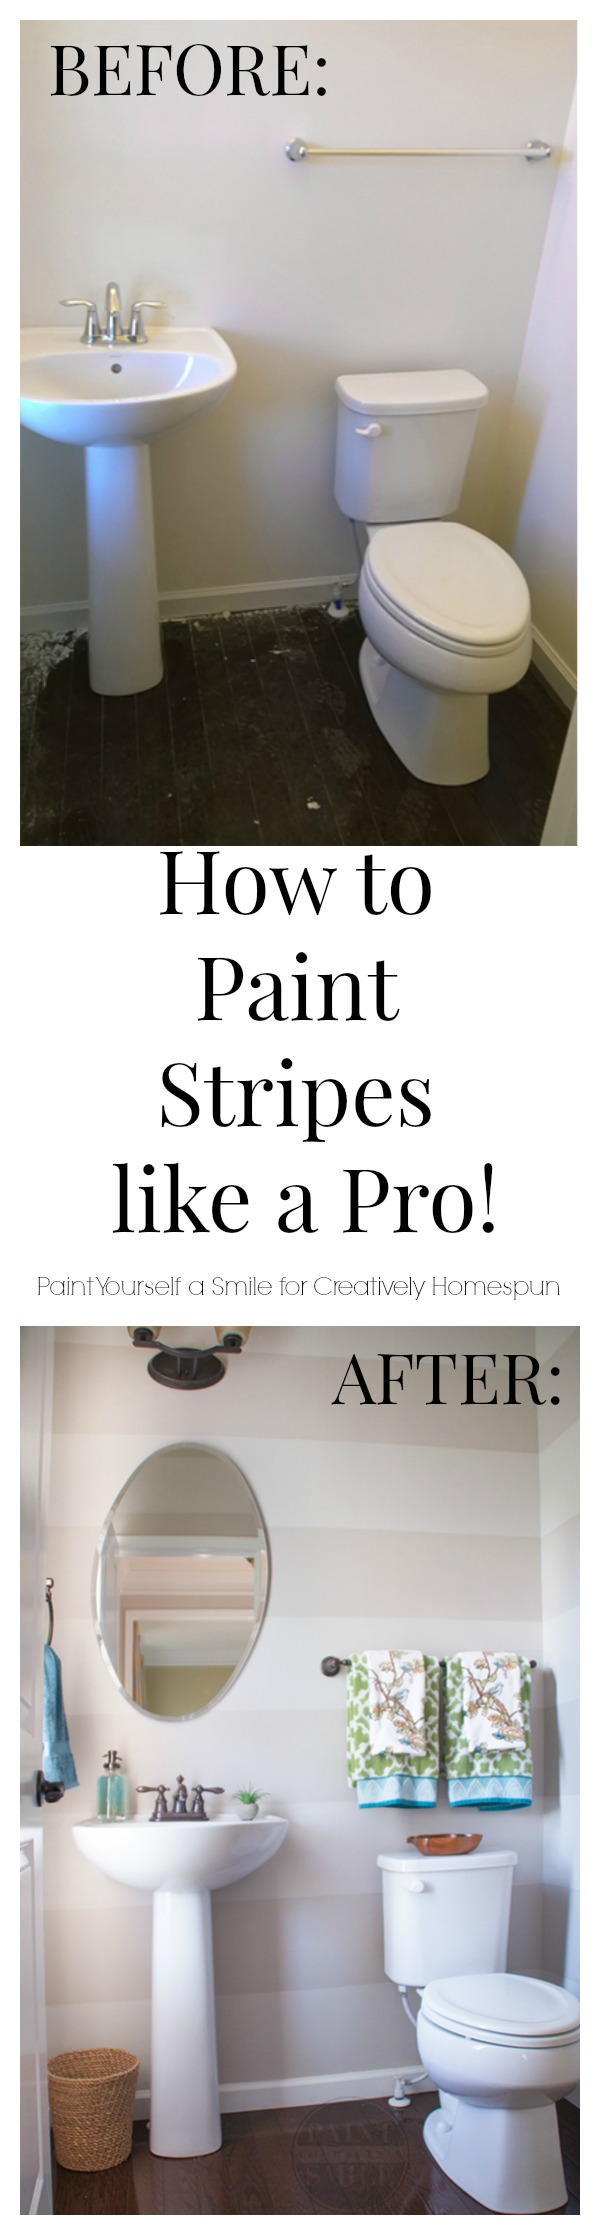 how to paint stripes pinterest